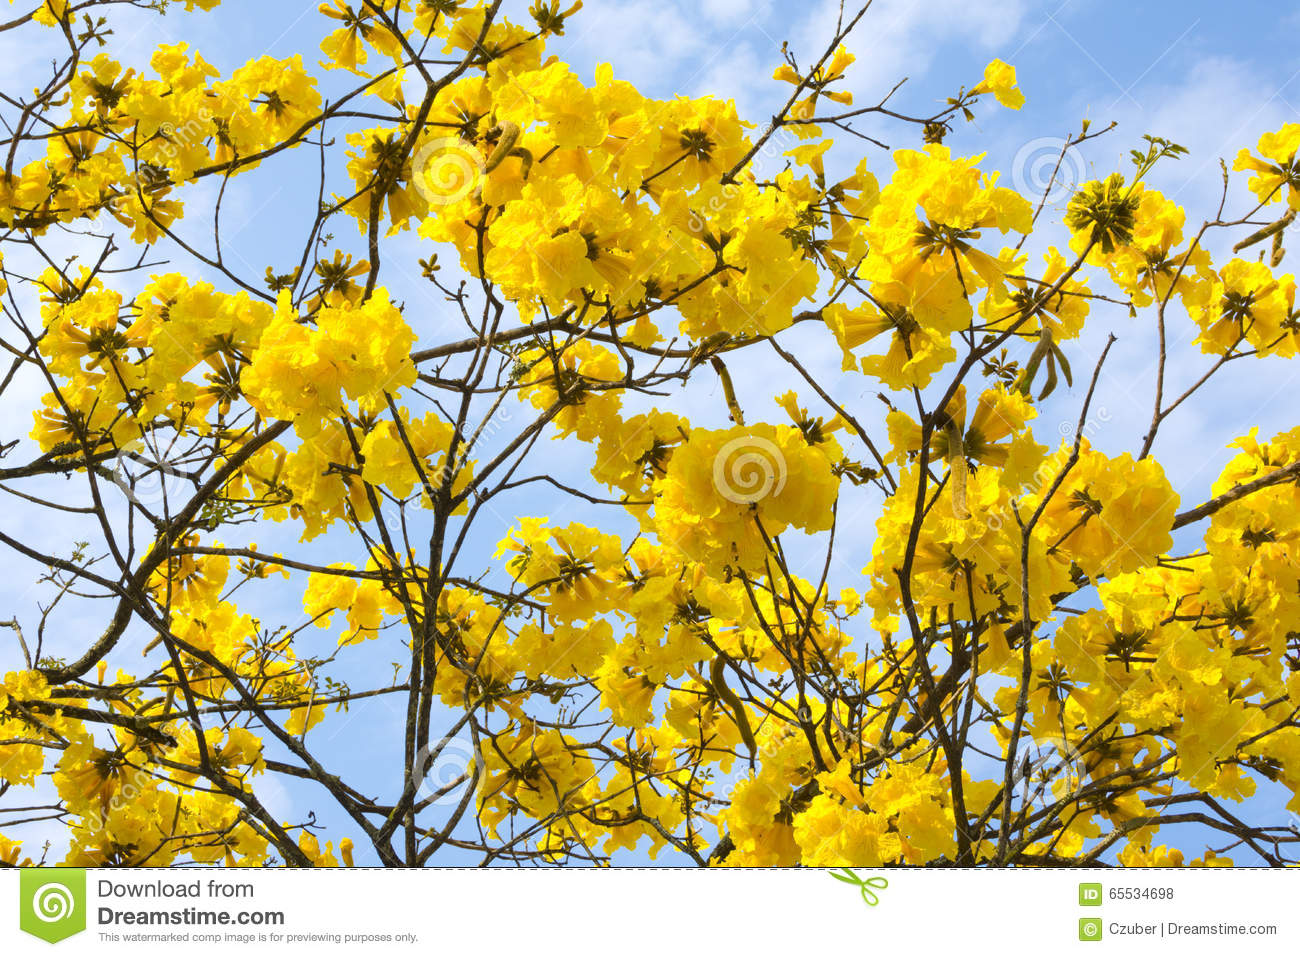 Closeup golden trumpet tree flowers stock photo image of trumpet closeup of twisted bare branches and fully blooming yellow flower clusters of tabebuia chrysotricha golden trumpet tree under sunny blue sky in brazil mightylinksfo